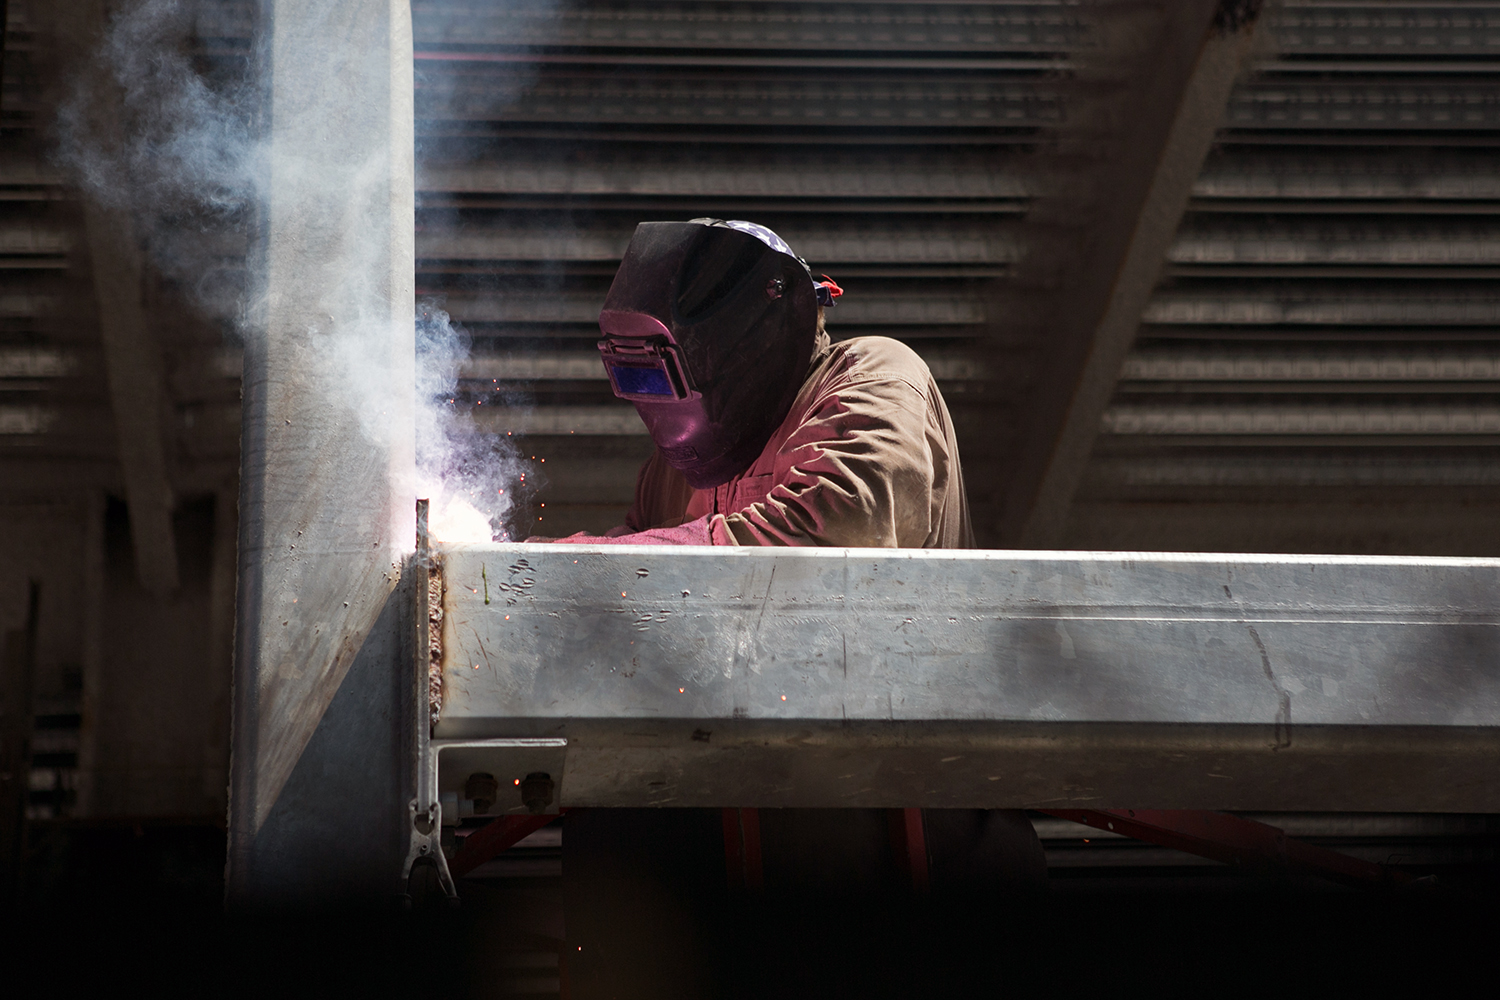 Production welder Steve Makein works on a new building in South Boston on June 6, 2016. (Photo by Lauren Owens Lambert/GroundTruth)